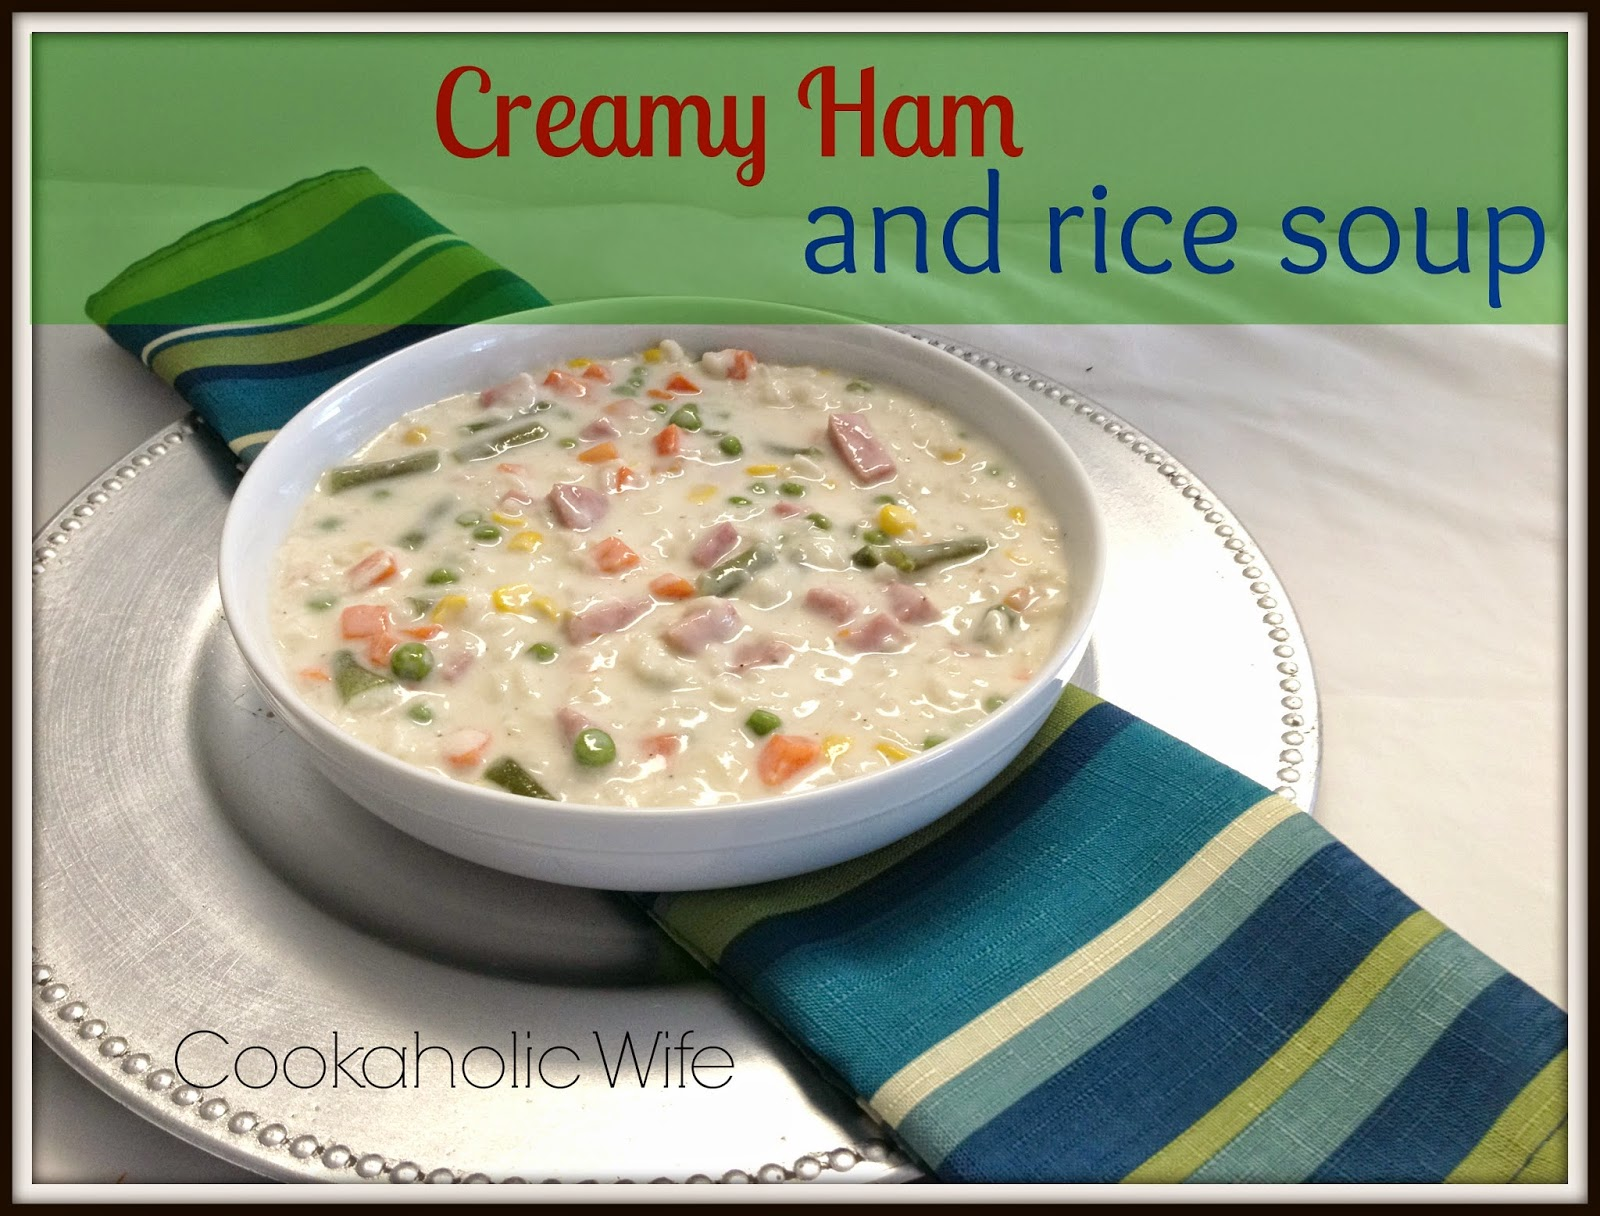 Creamy Ham and Rice Soup - Cookaholic Wife